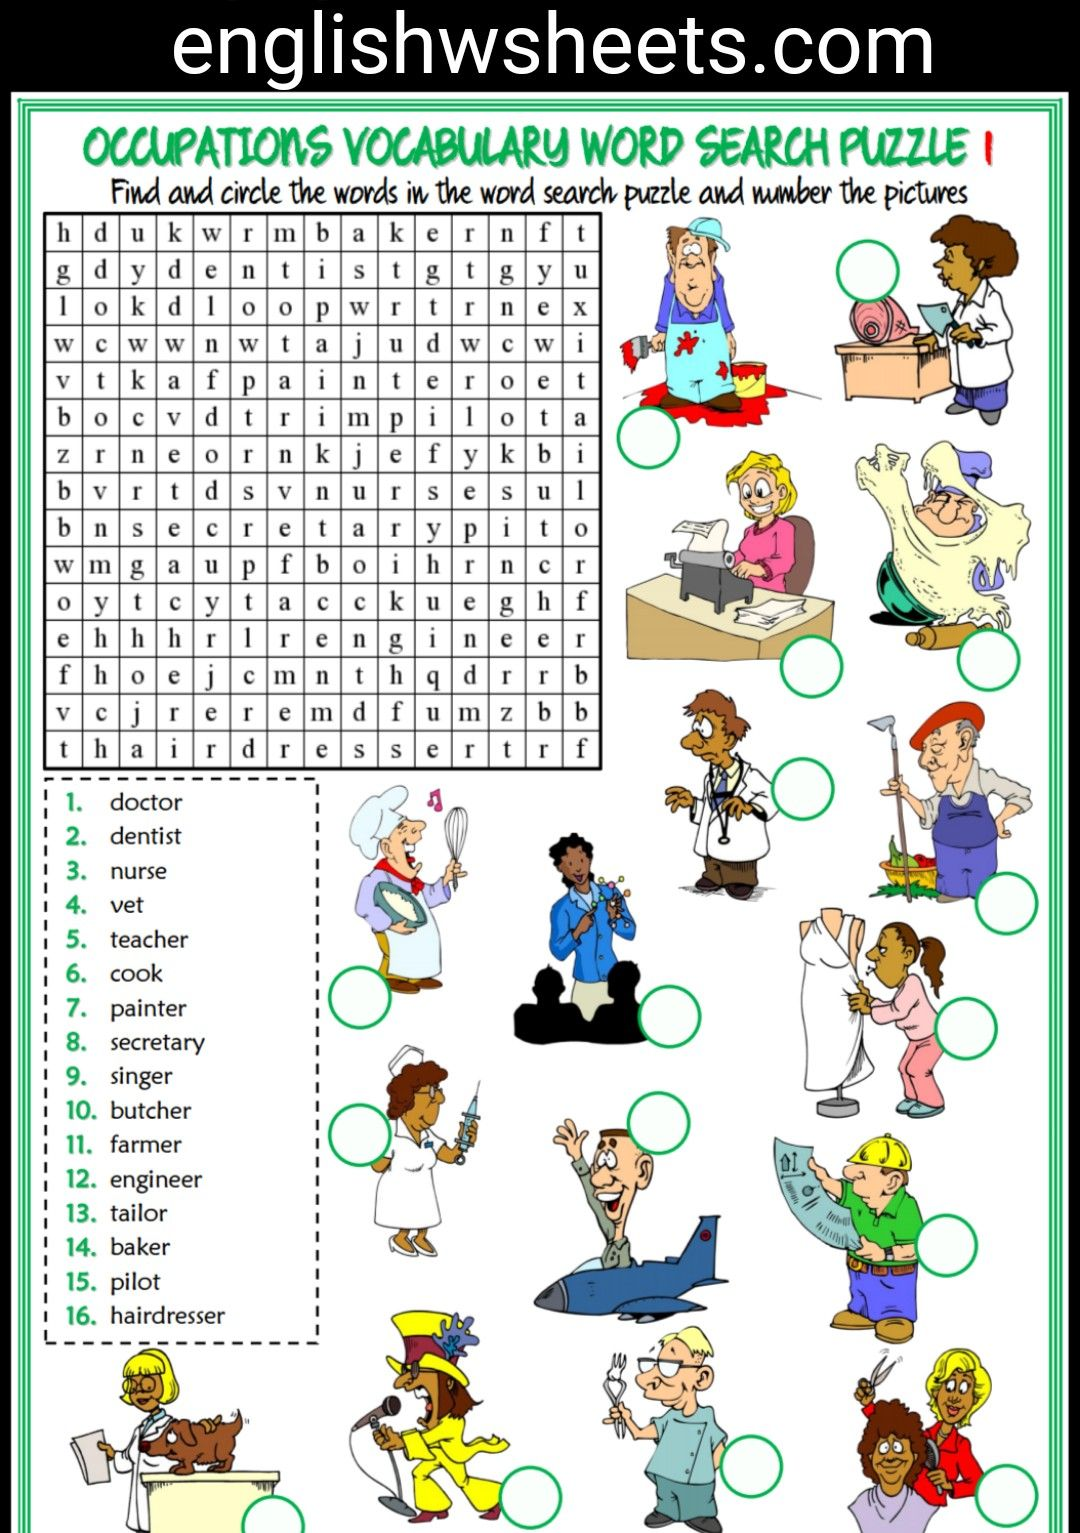 Jobs Esl Printable Word Search Puzzle Worksheets For Kids 5 Sets Jobs Occupations